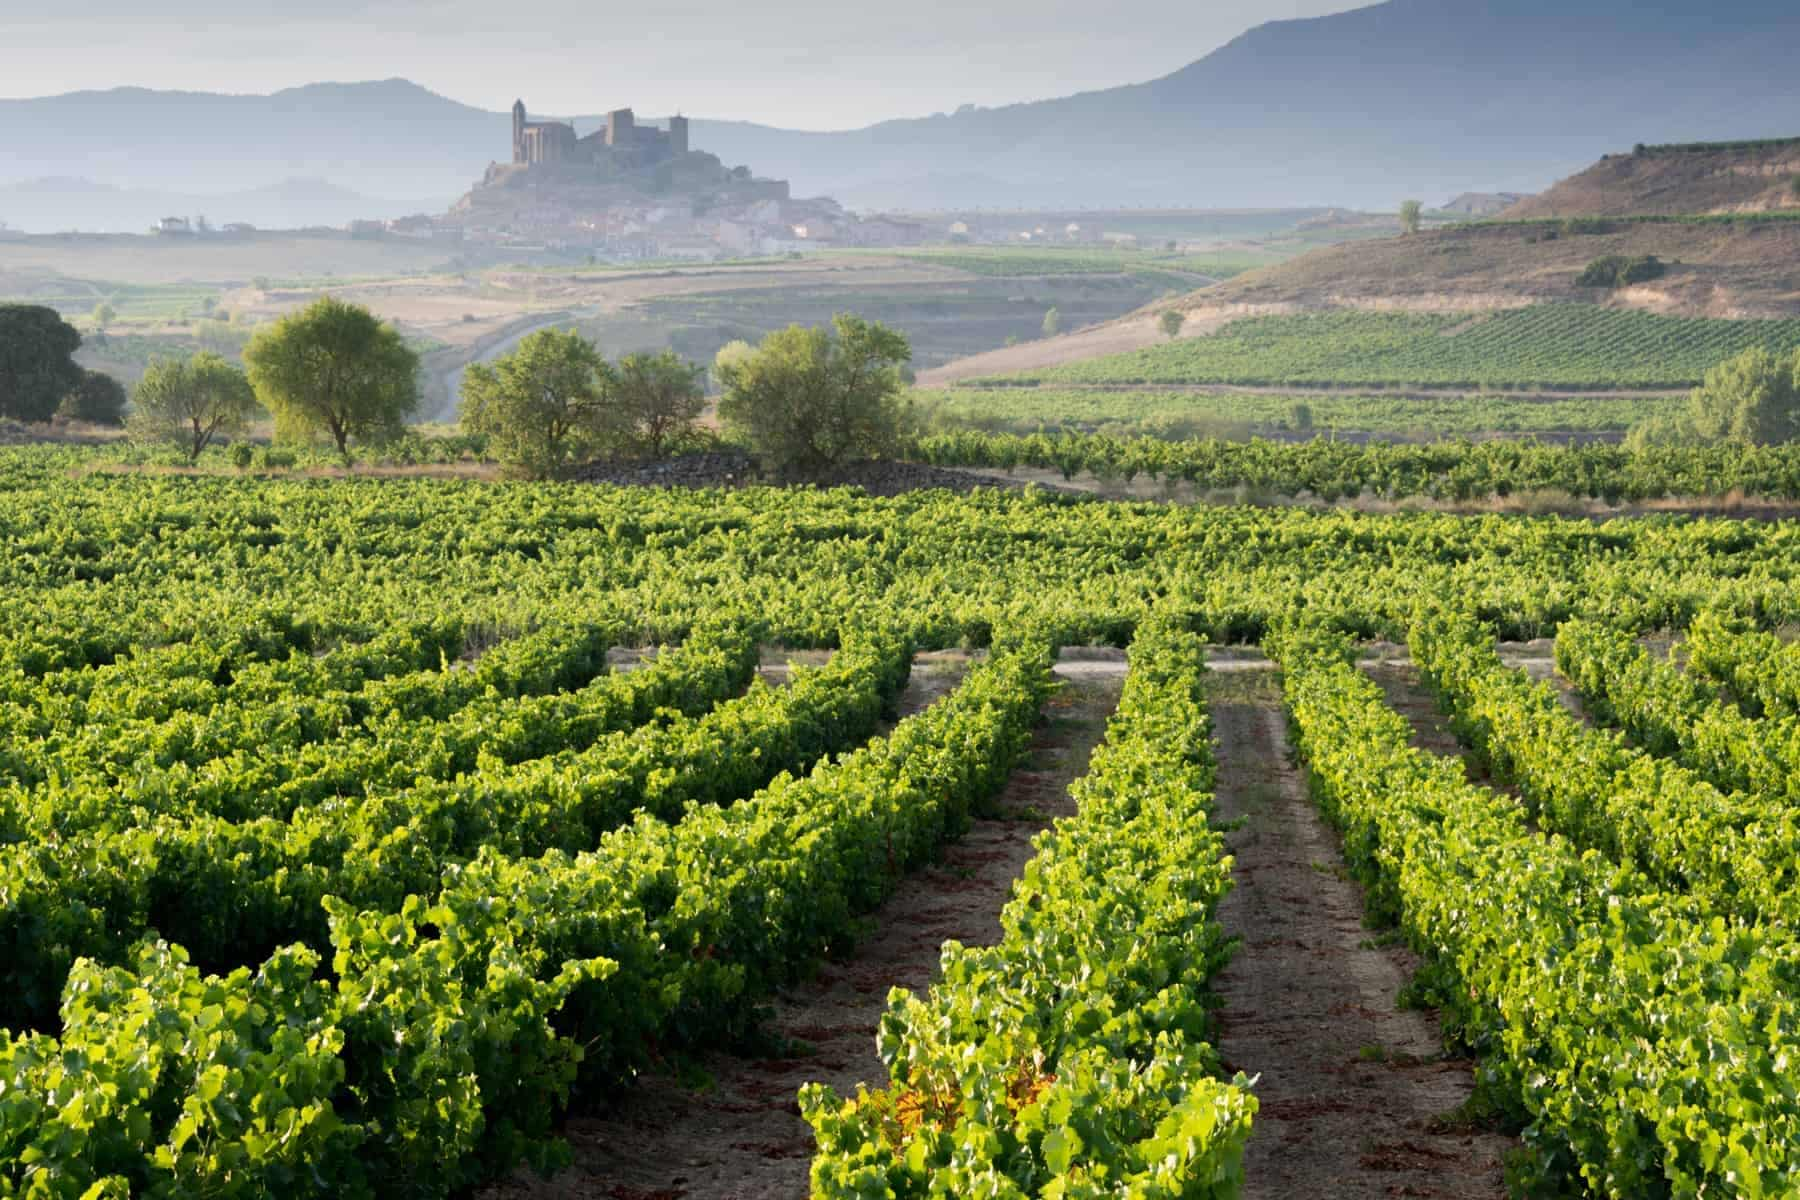 La Rioja wine region in Spain